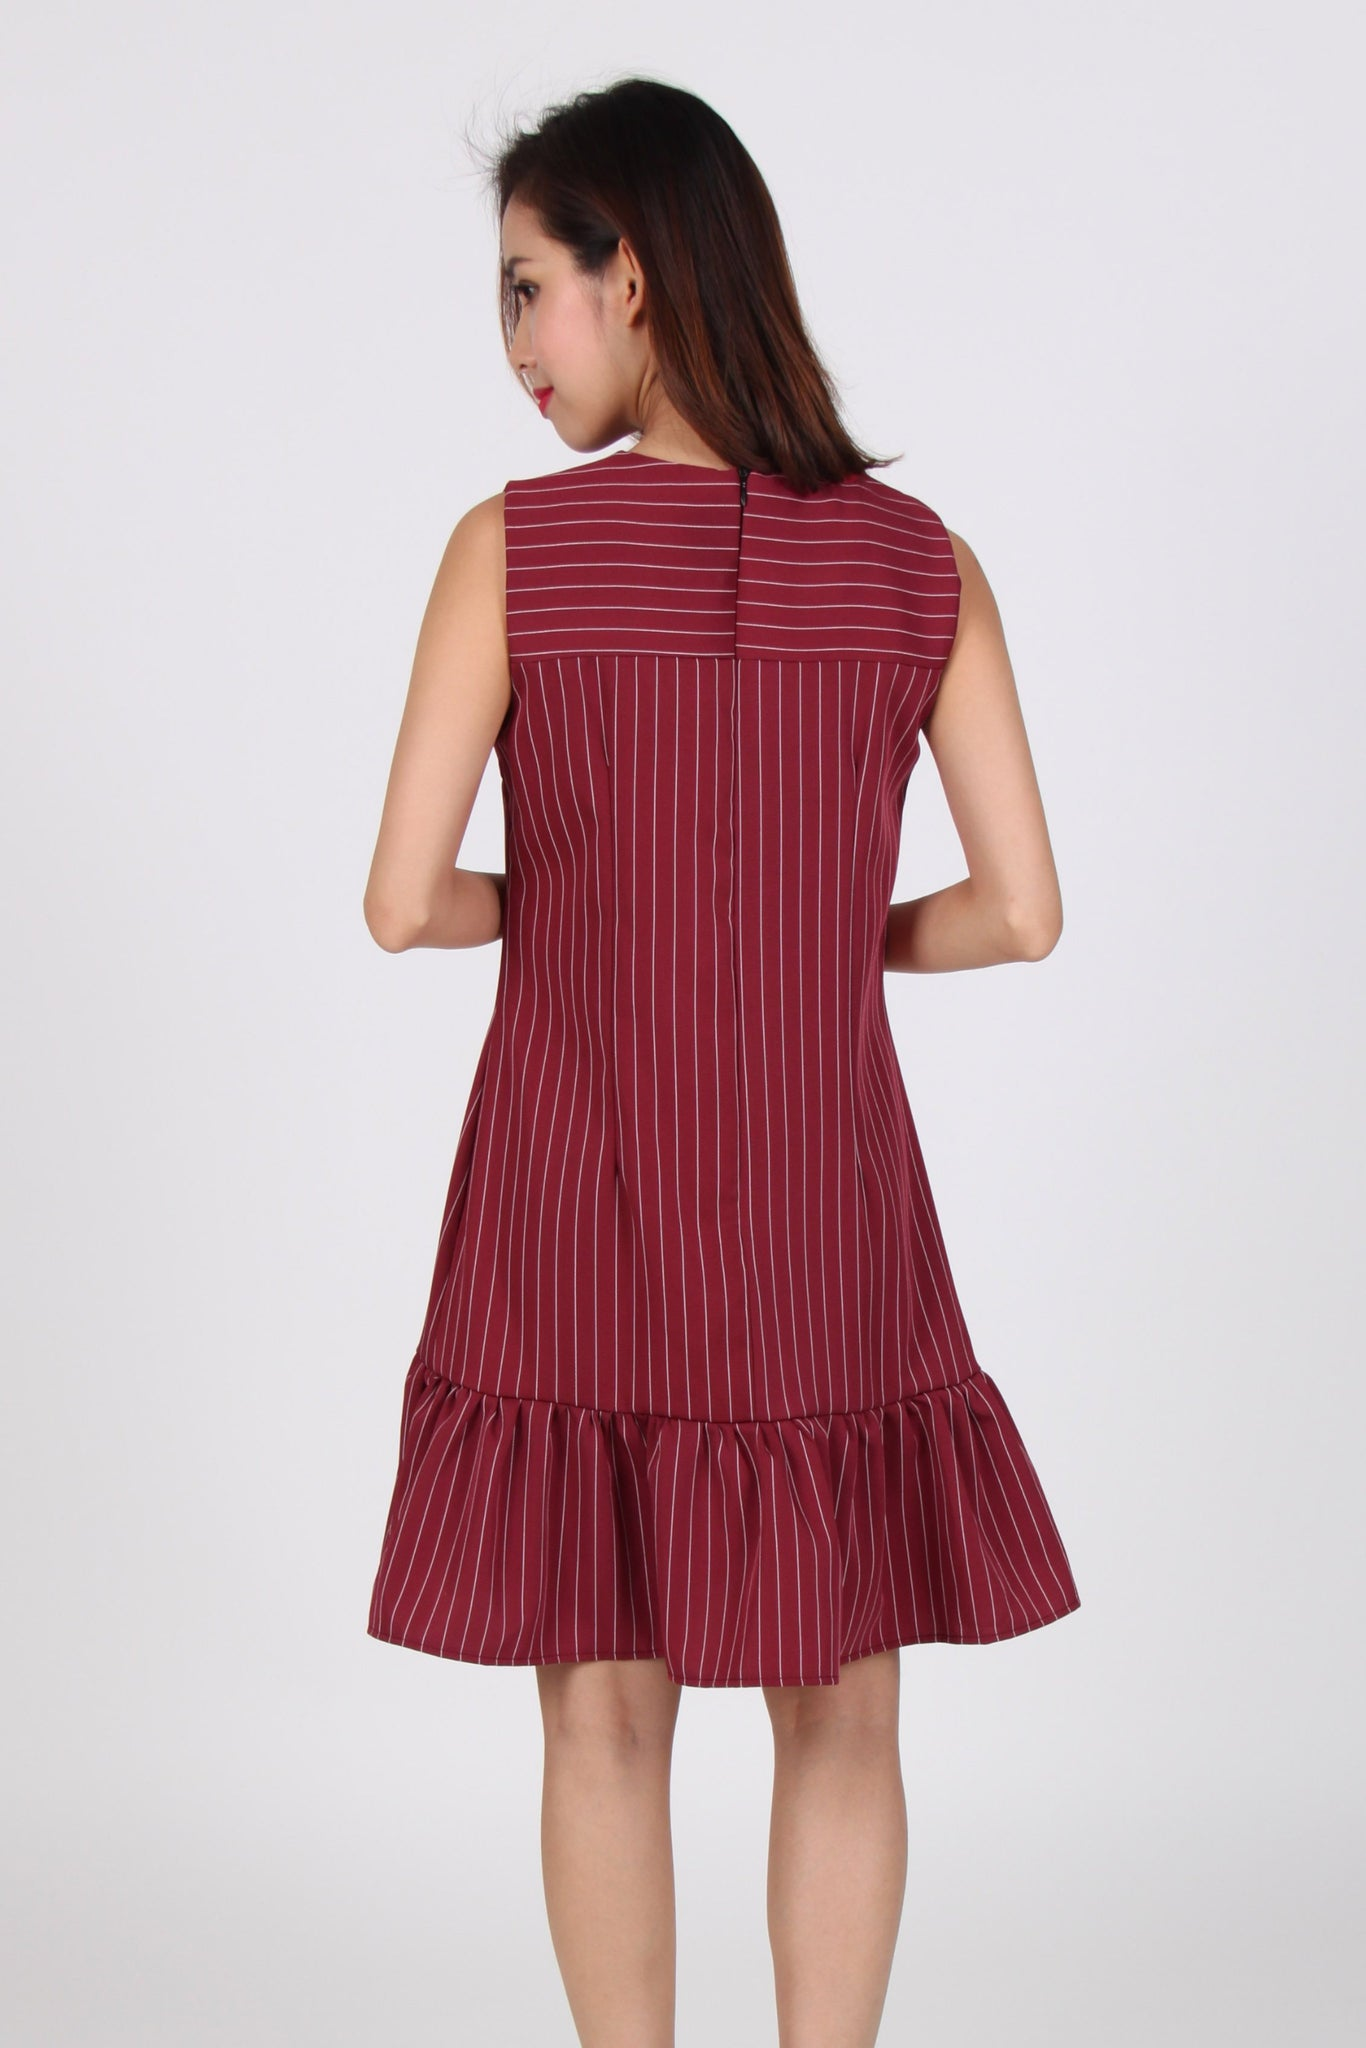 Pinstripes Sleeveless Drop Waist Dress in Maroon